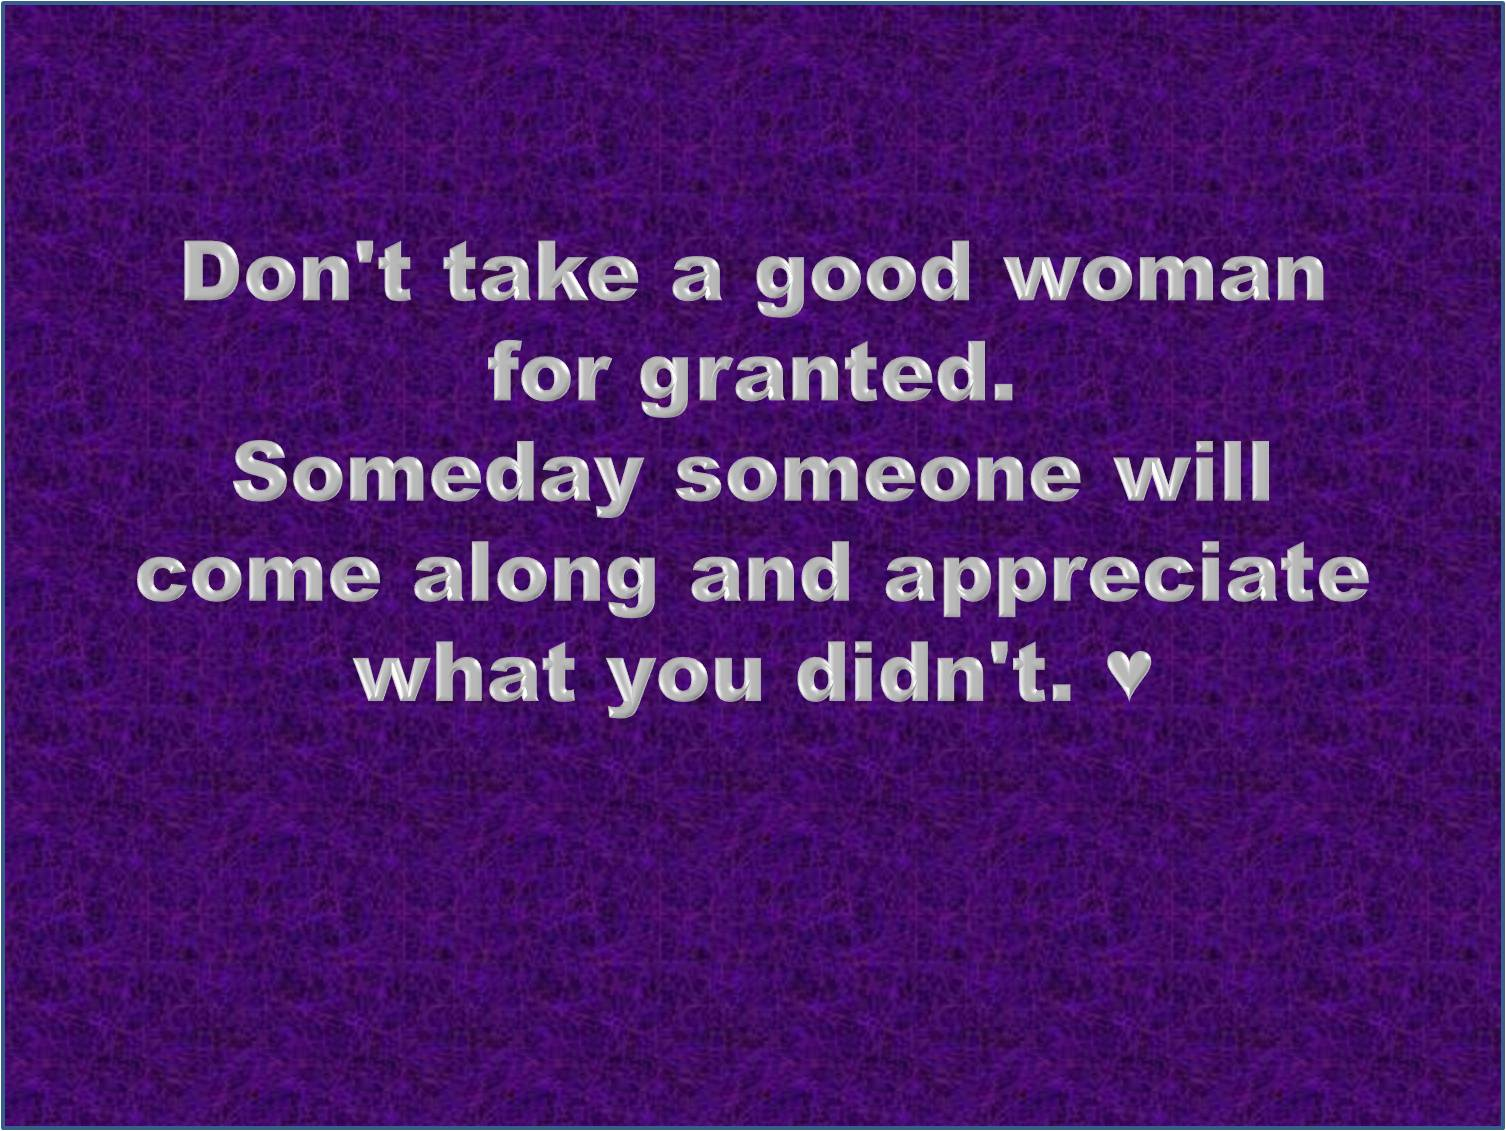 Quotes About Being Taken For Granted Quotesgram: Women Taking For Granted Quotes. QuotesGram